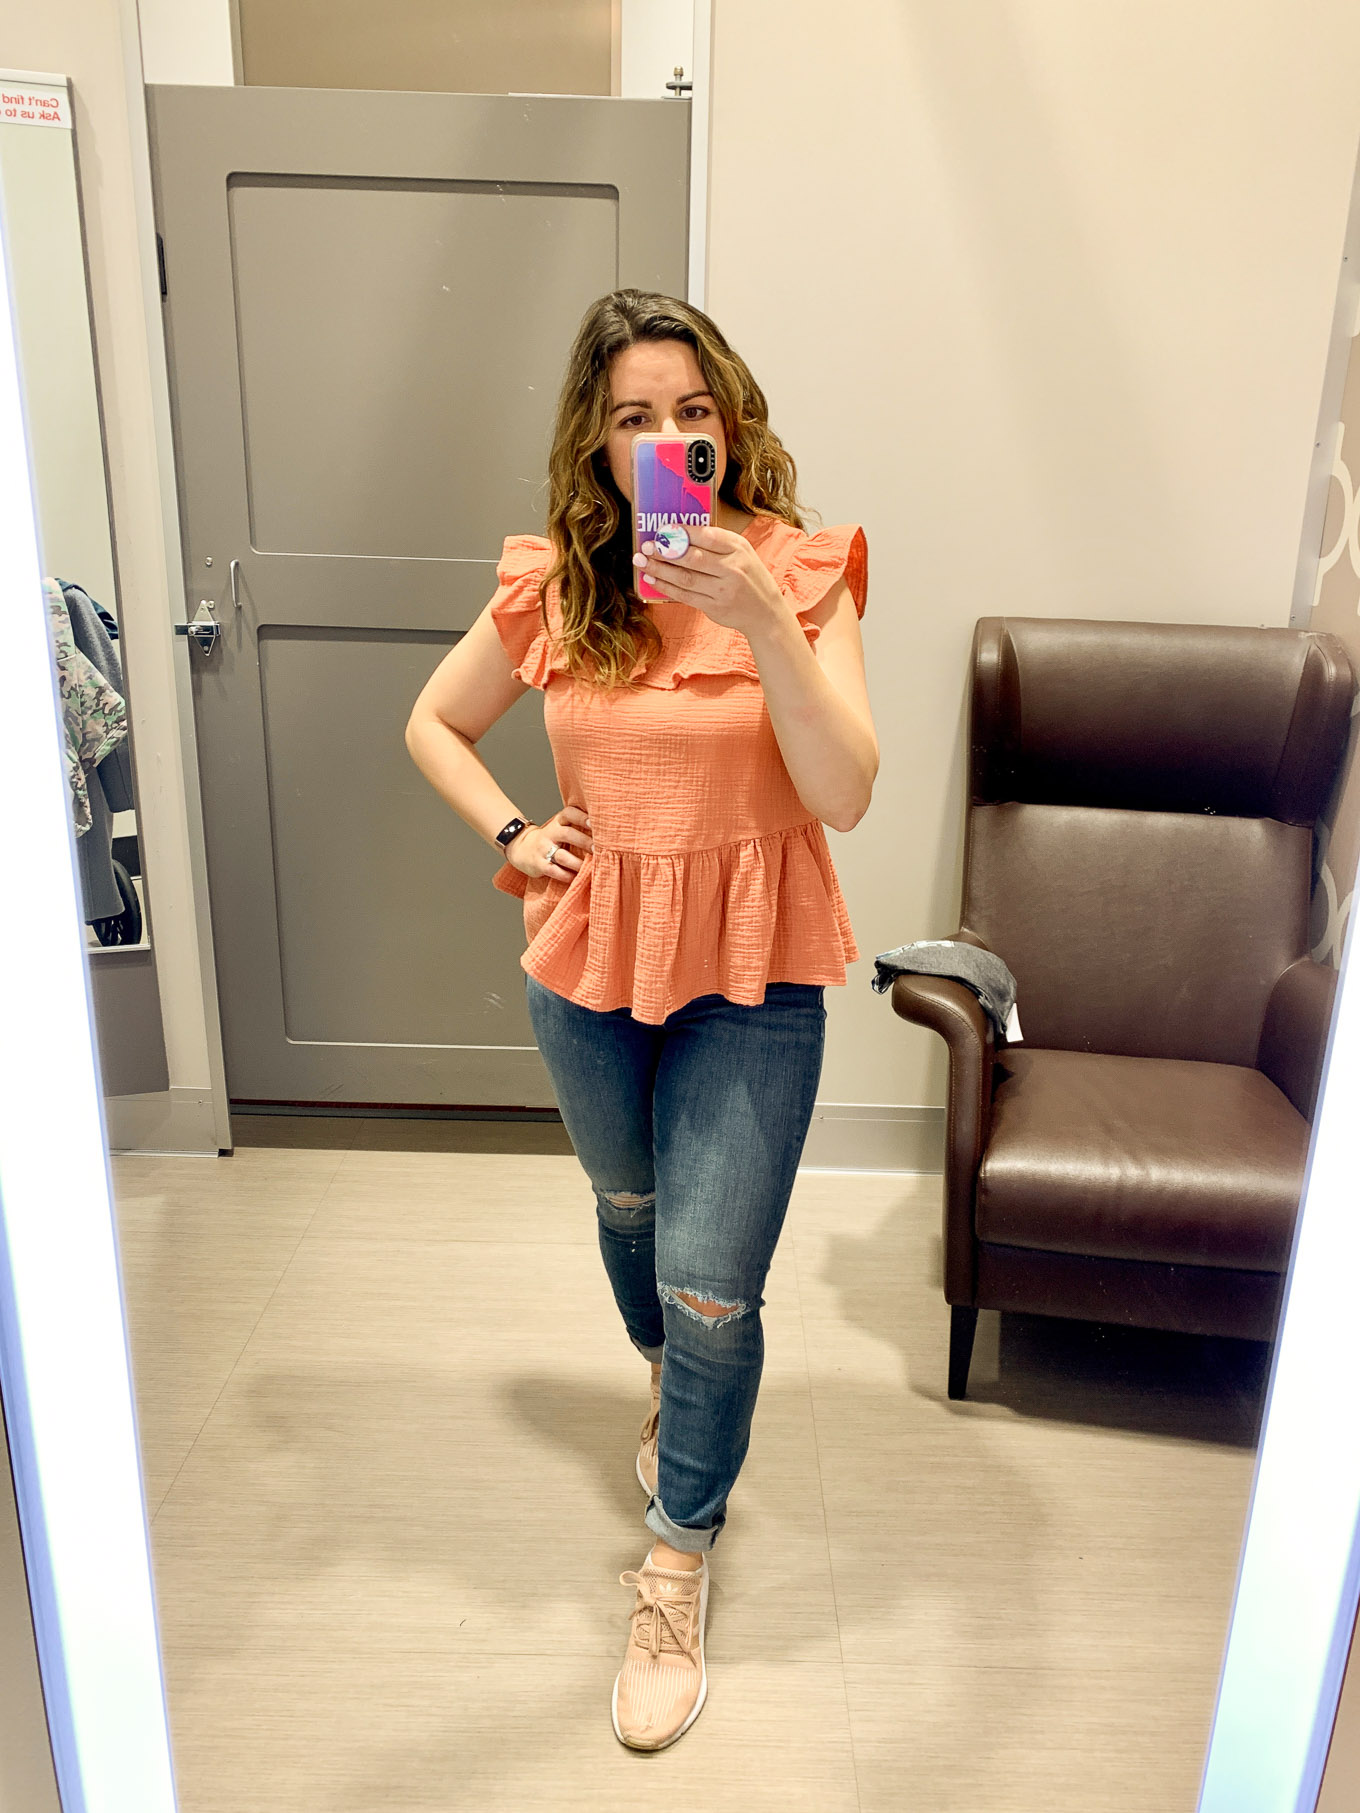 Target Try On by popular Chicago fashion blog, Glass of Glam: image of a woman wearing Target Women's High-Rise Jeans and Target Women's Flutter Sleeve Crewneck Ruffle Tank Top.